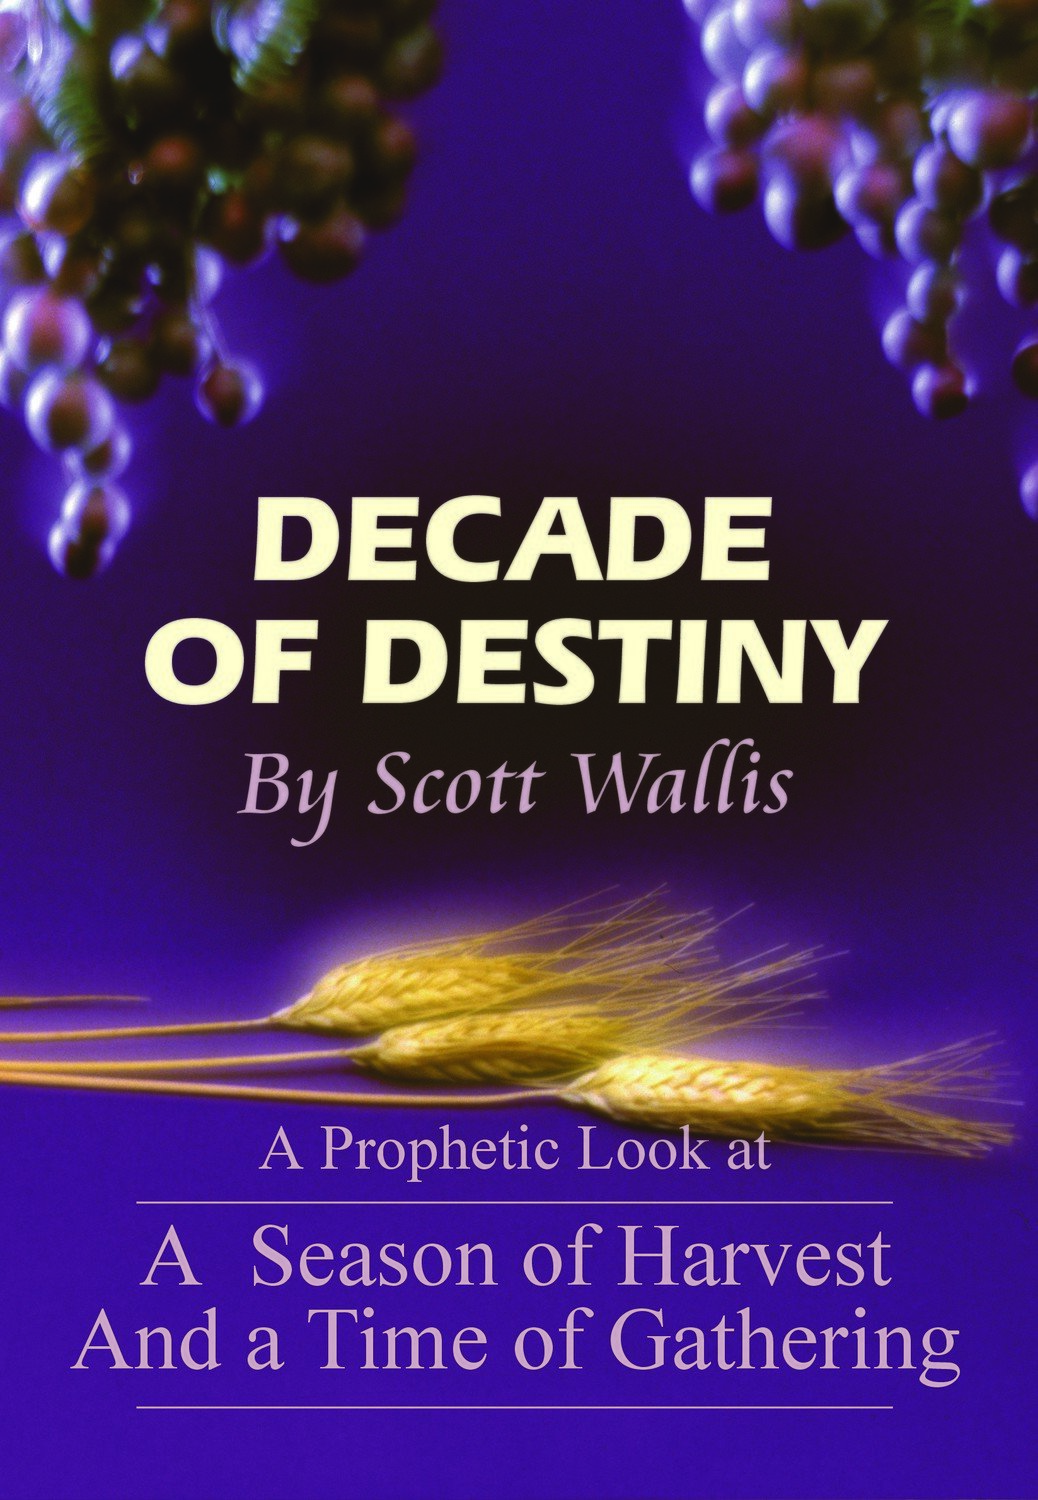 Decade of Destiny: A Prophetic Look at a Season of Harvest and Time of Gathering